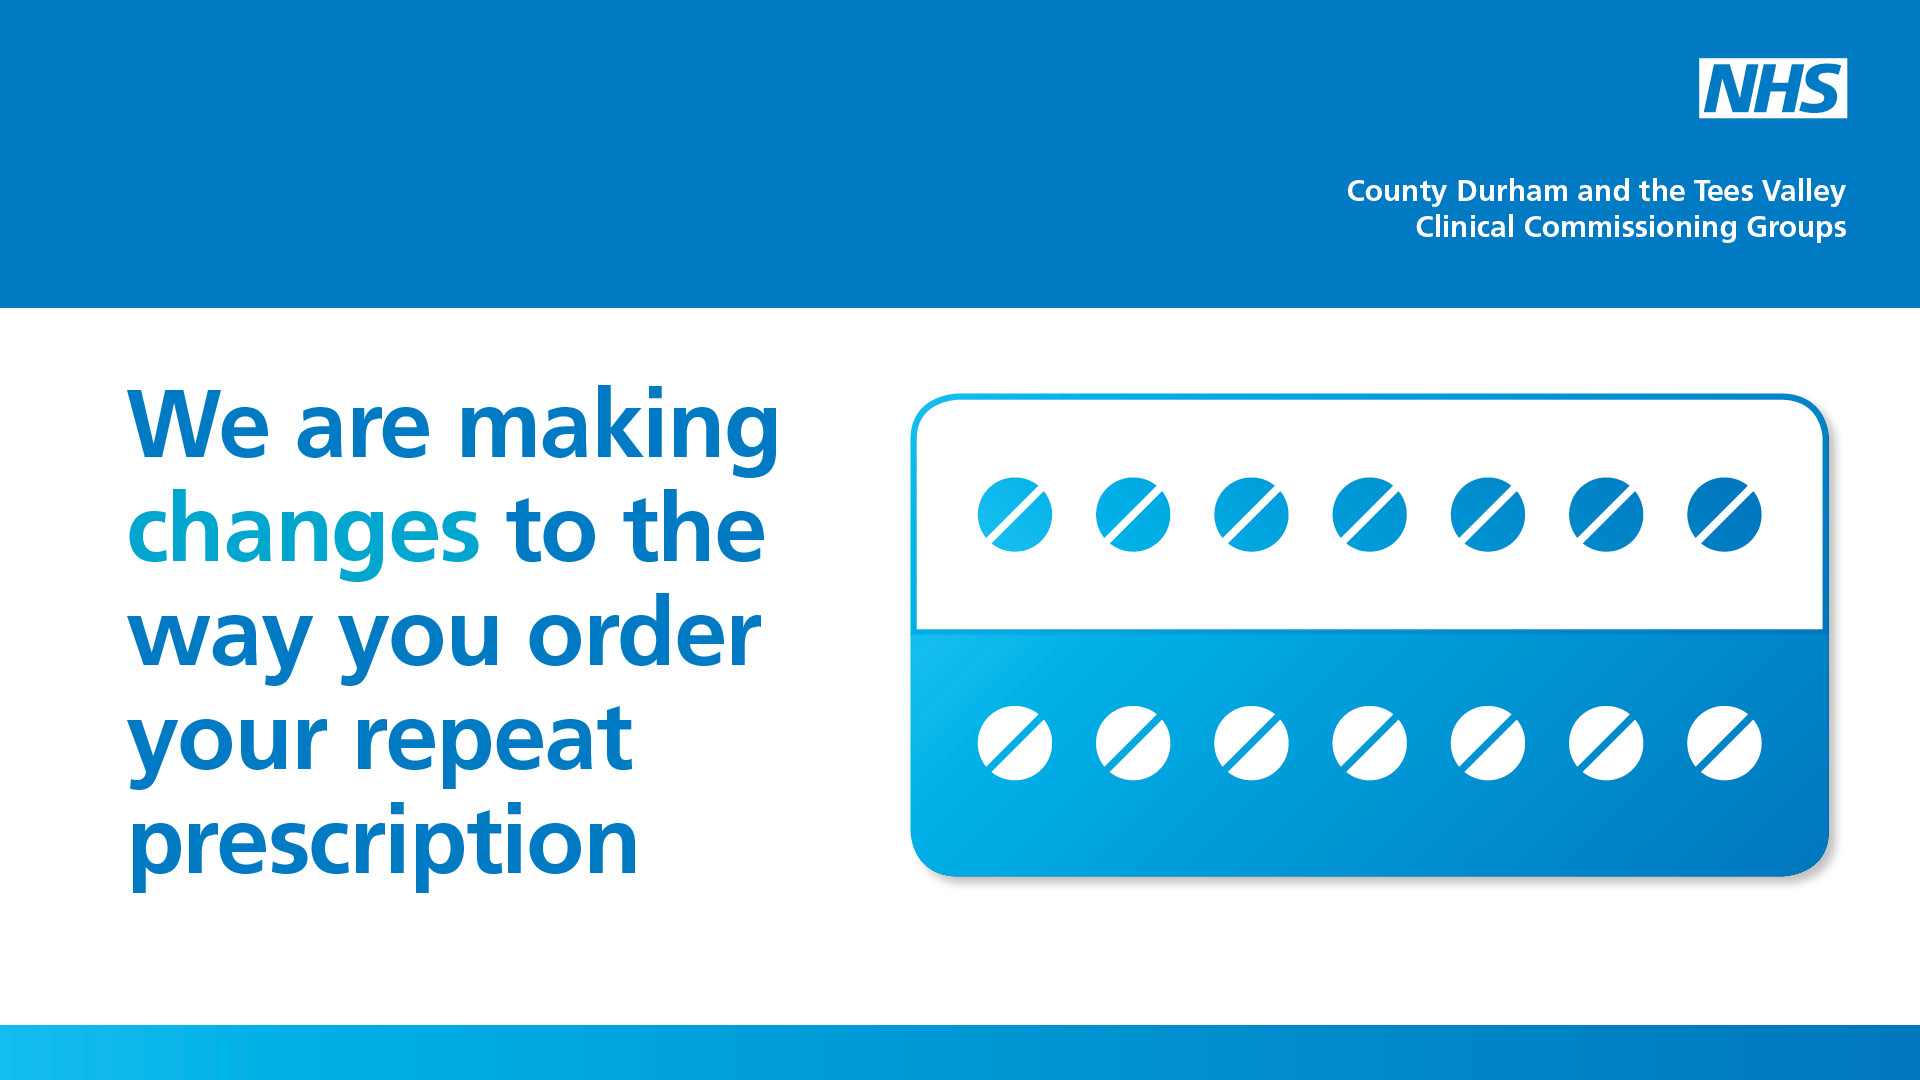 We are making changes to the way you order your repeat prescription